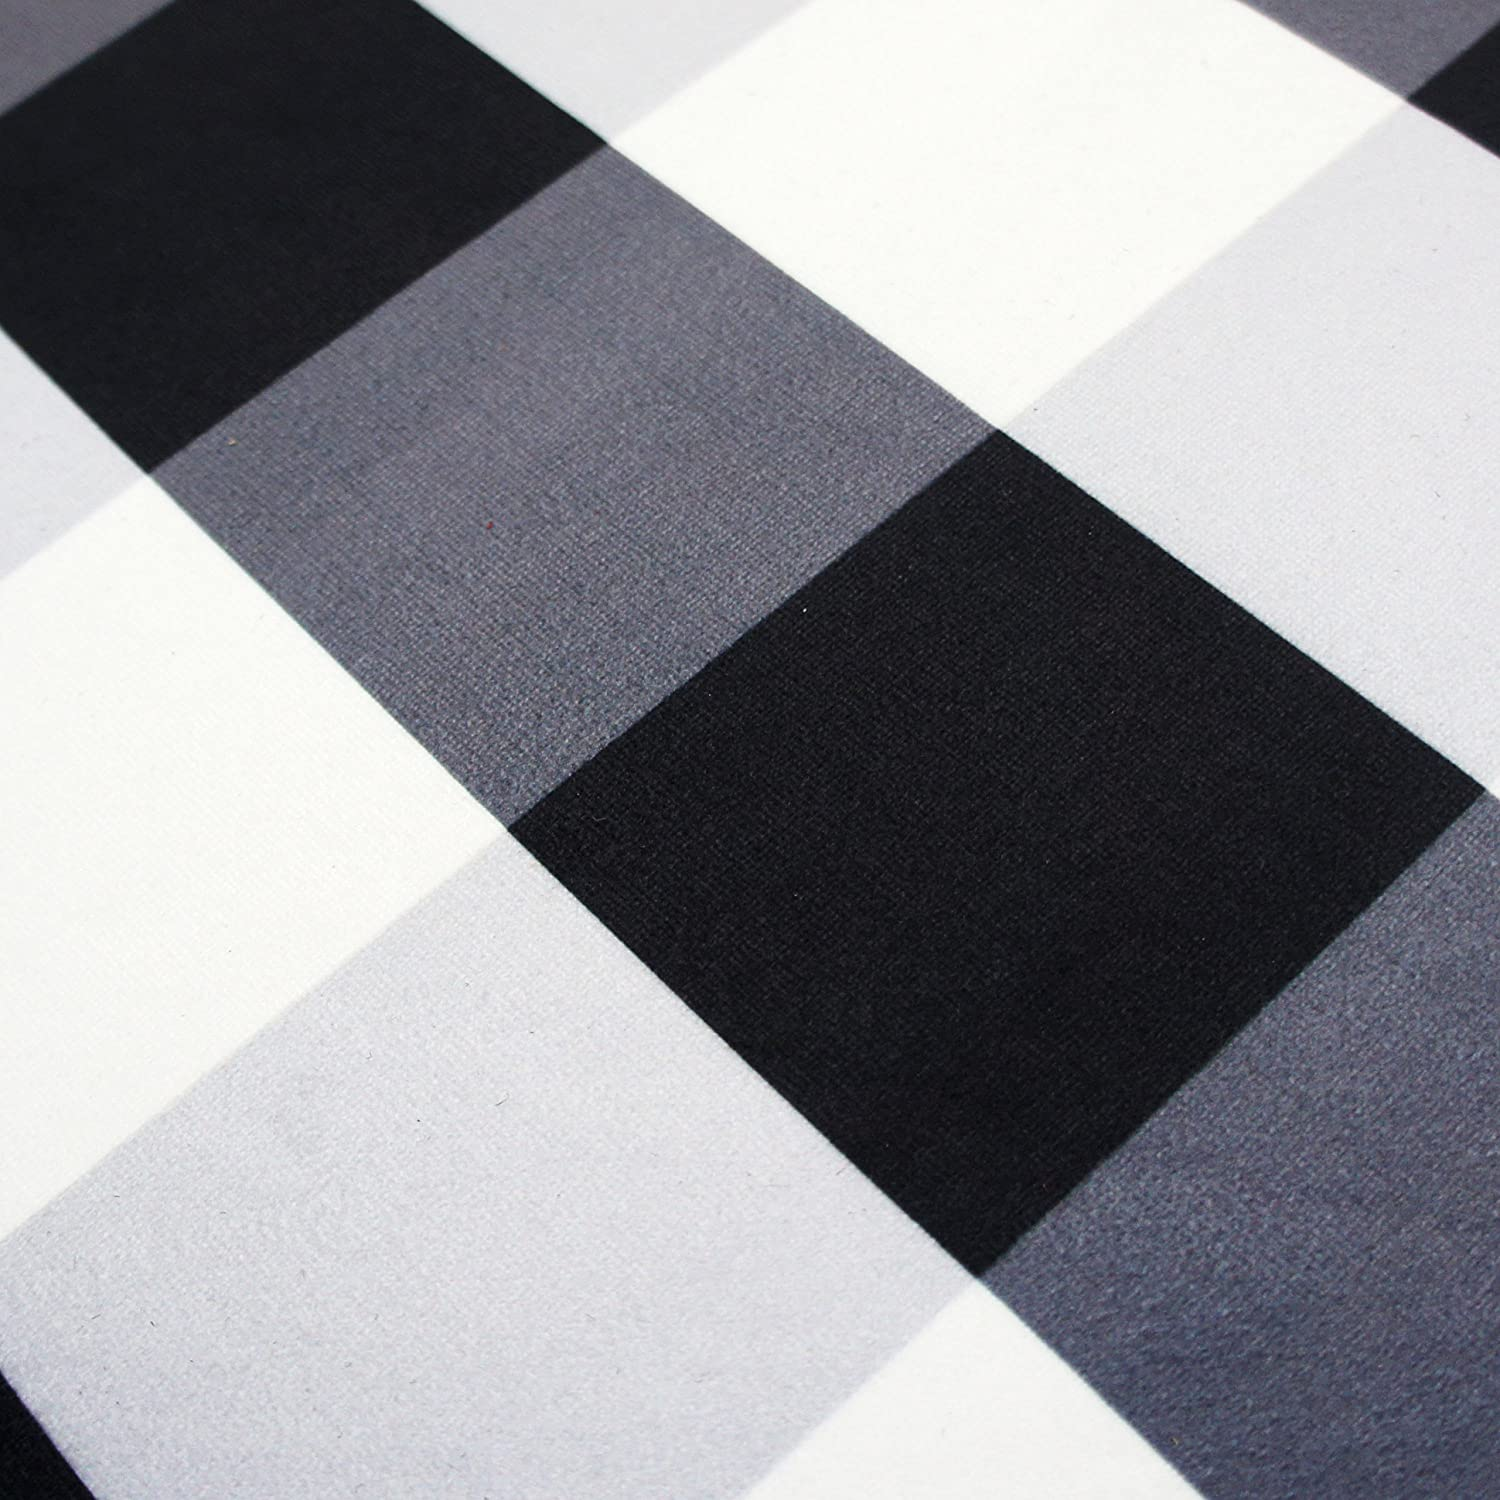 Plaid Rug: USTIDE 100% Cotton Rugs Buffalo Plaid Rug Black/White